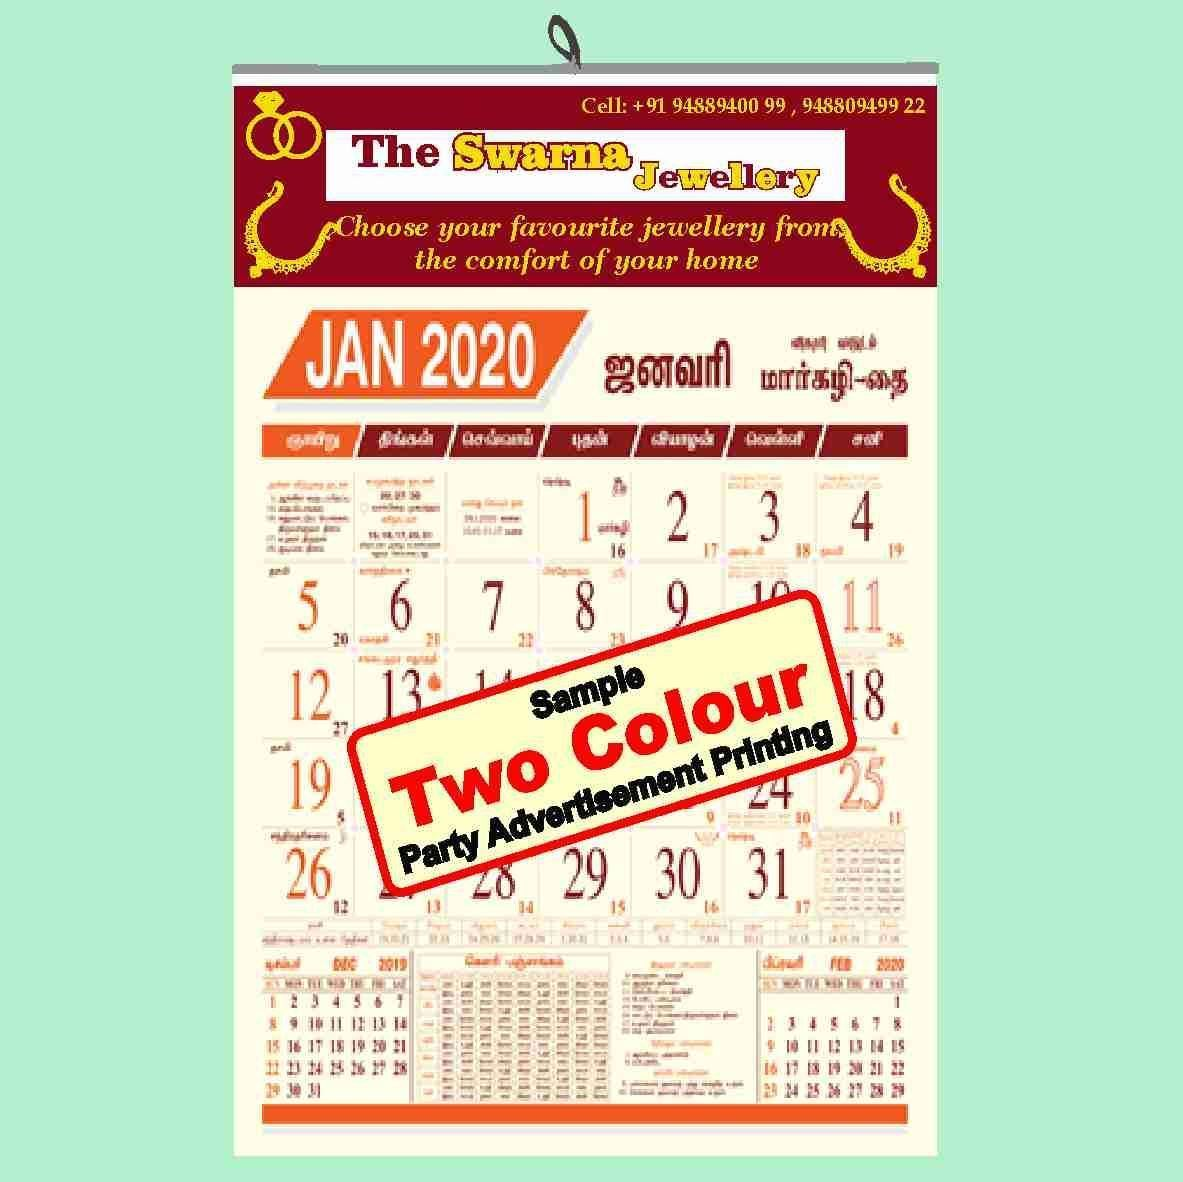 Two Colour Printing